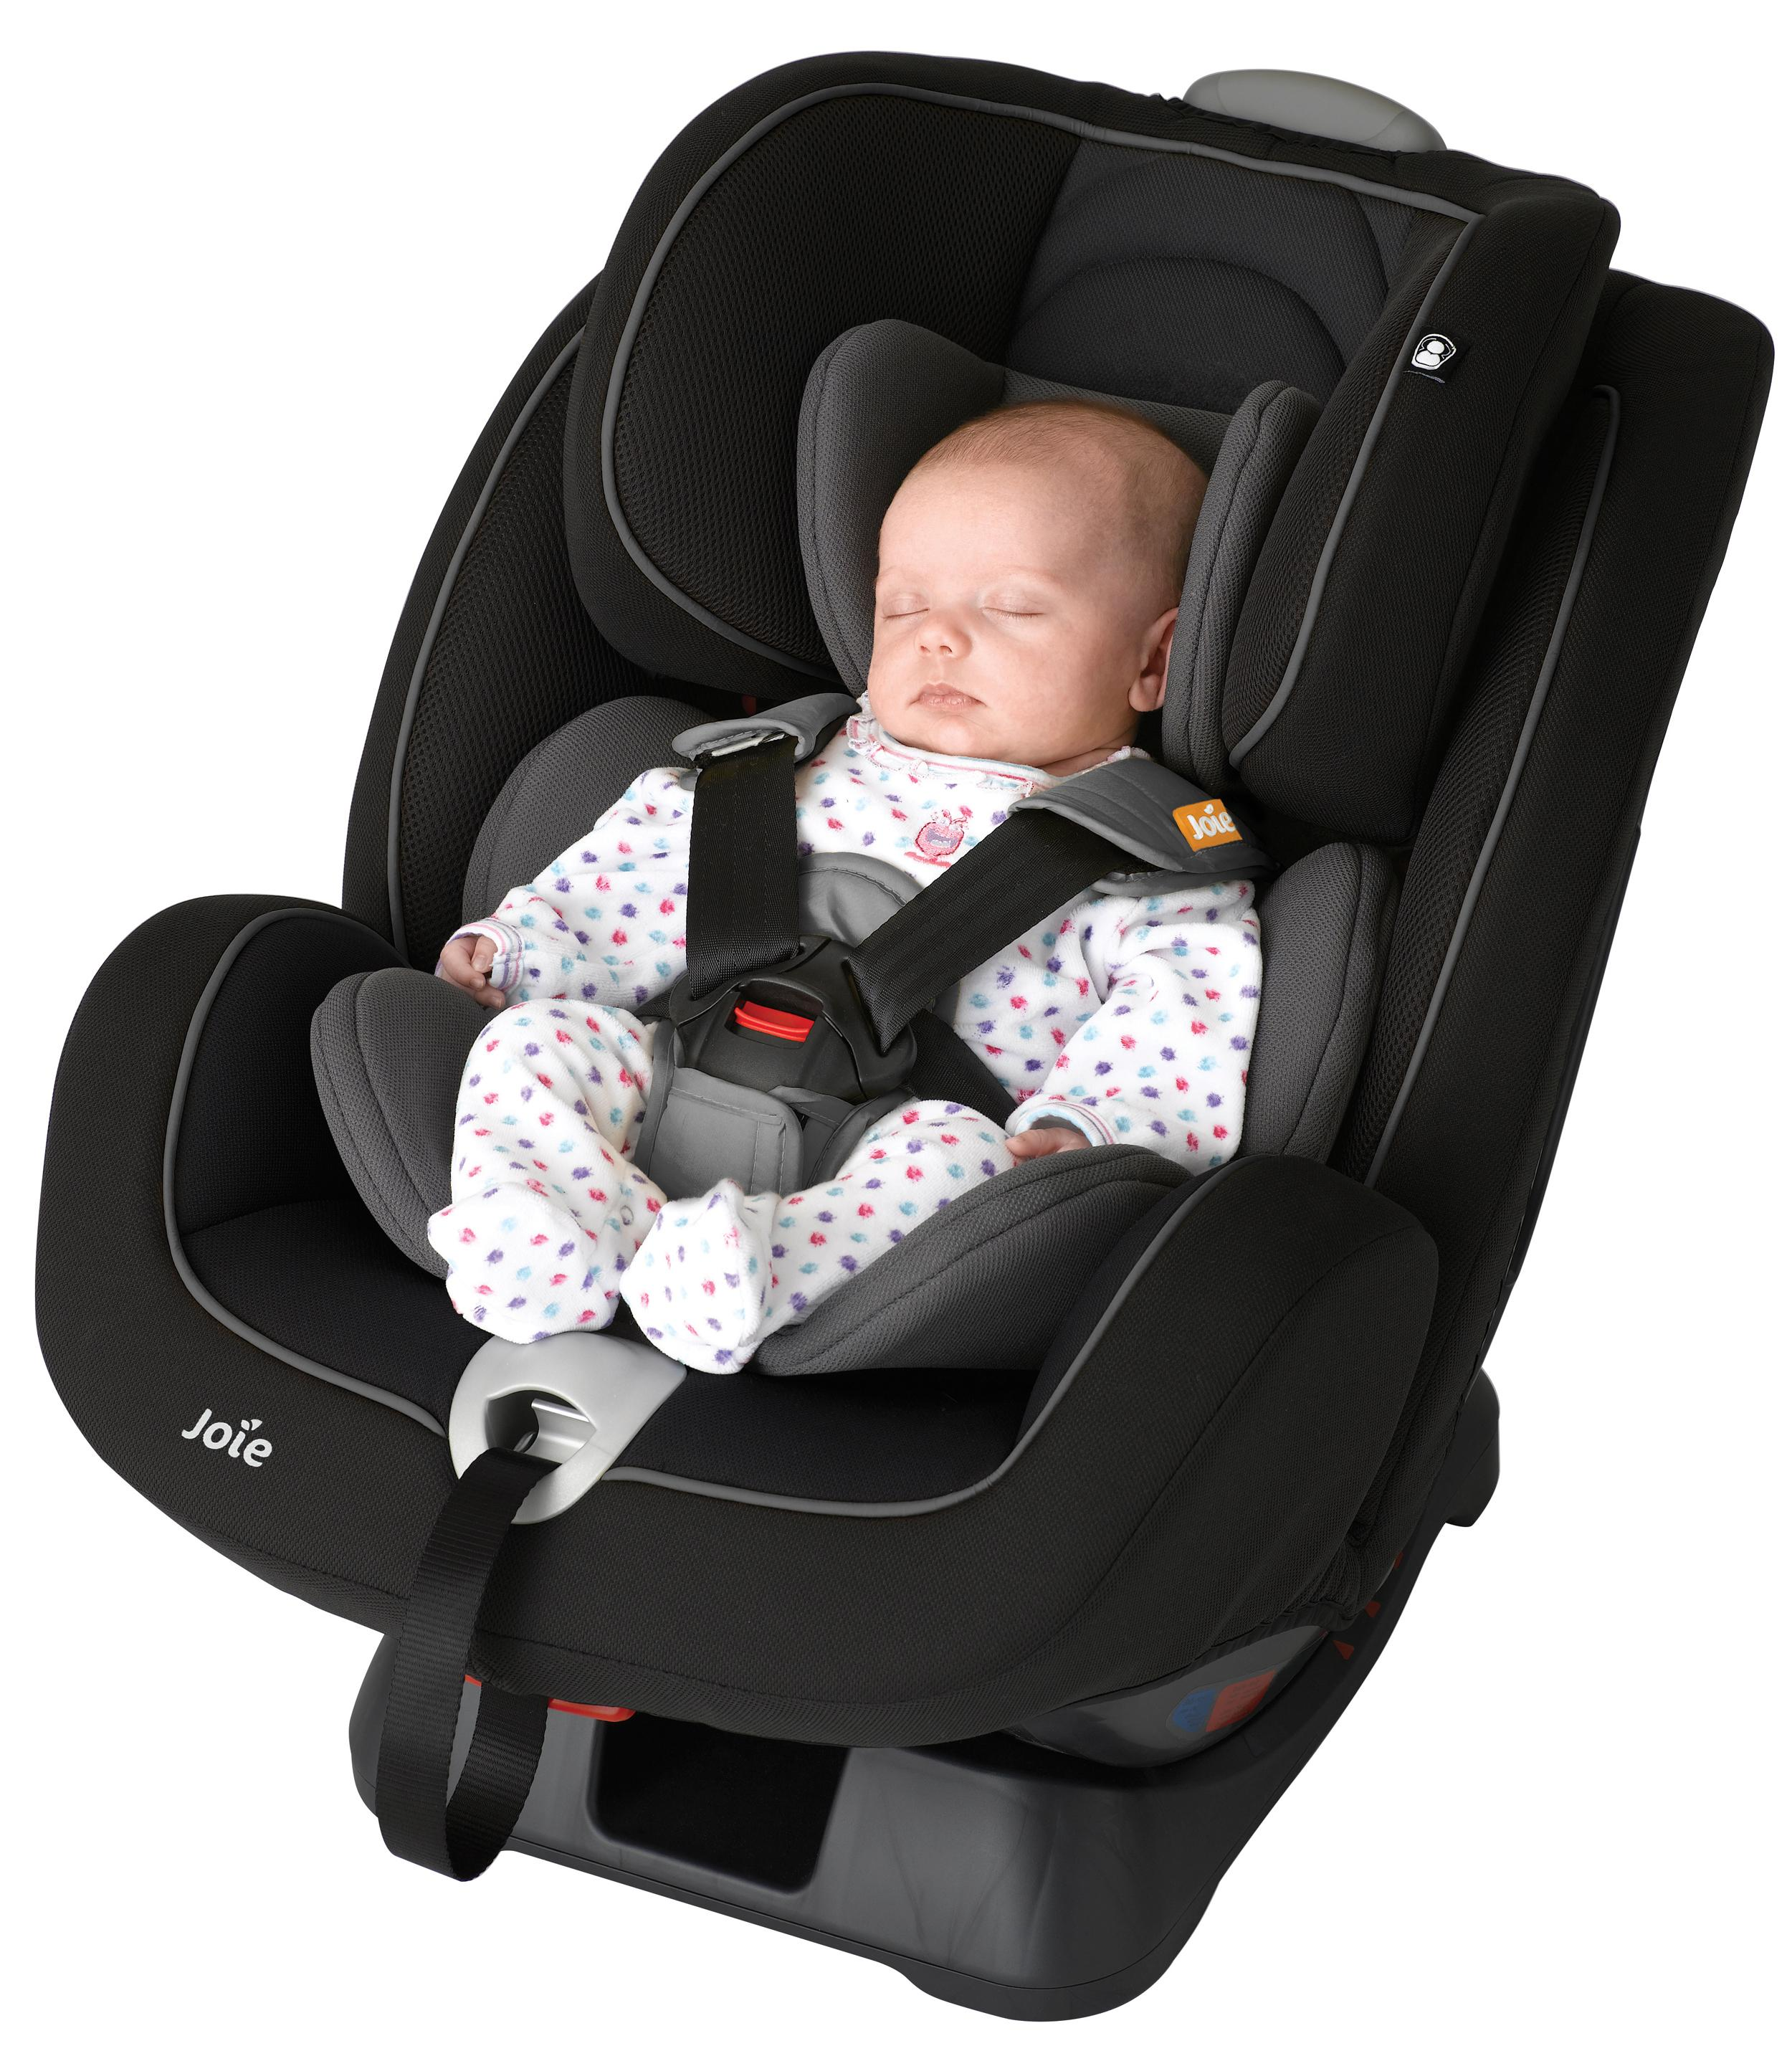 Joie Stages Twilight/Caviar Car Baby Child Safety Seat 0-7 ...